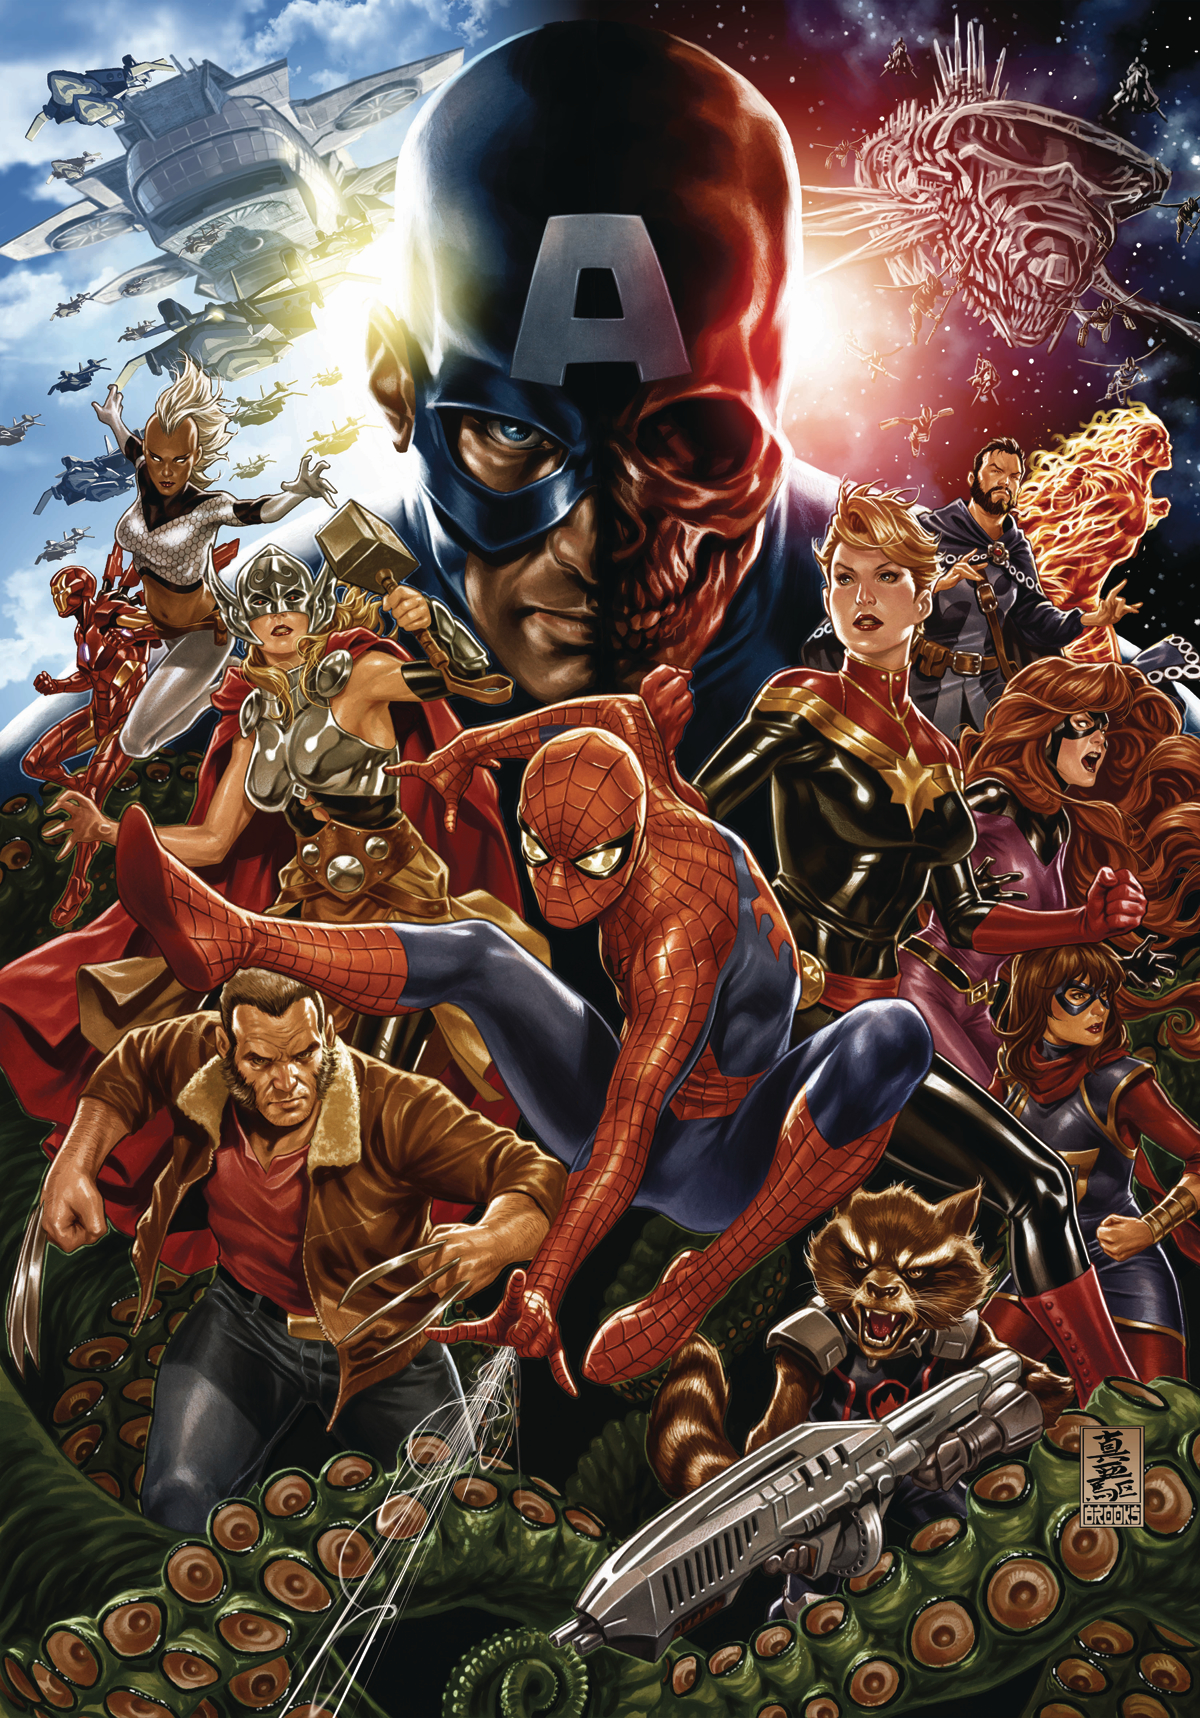 SECRET EMPIRE #1 POSTER